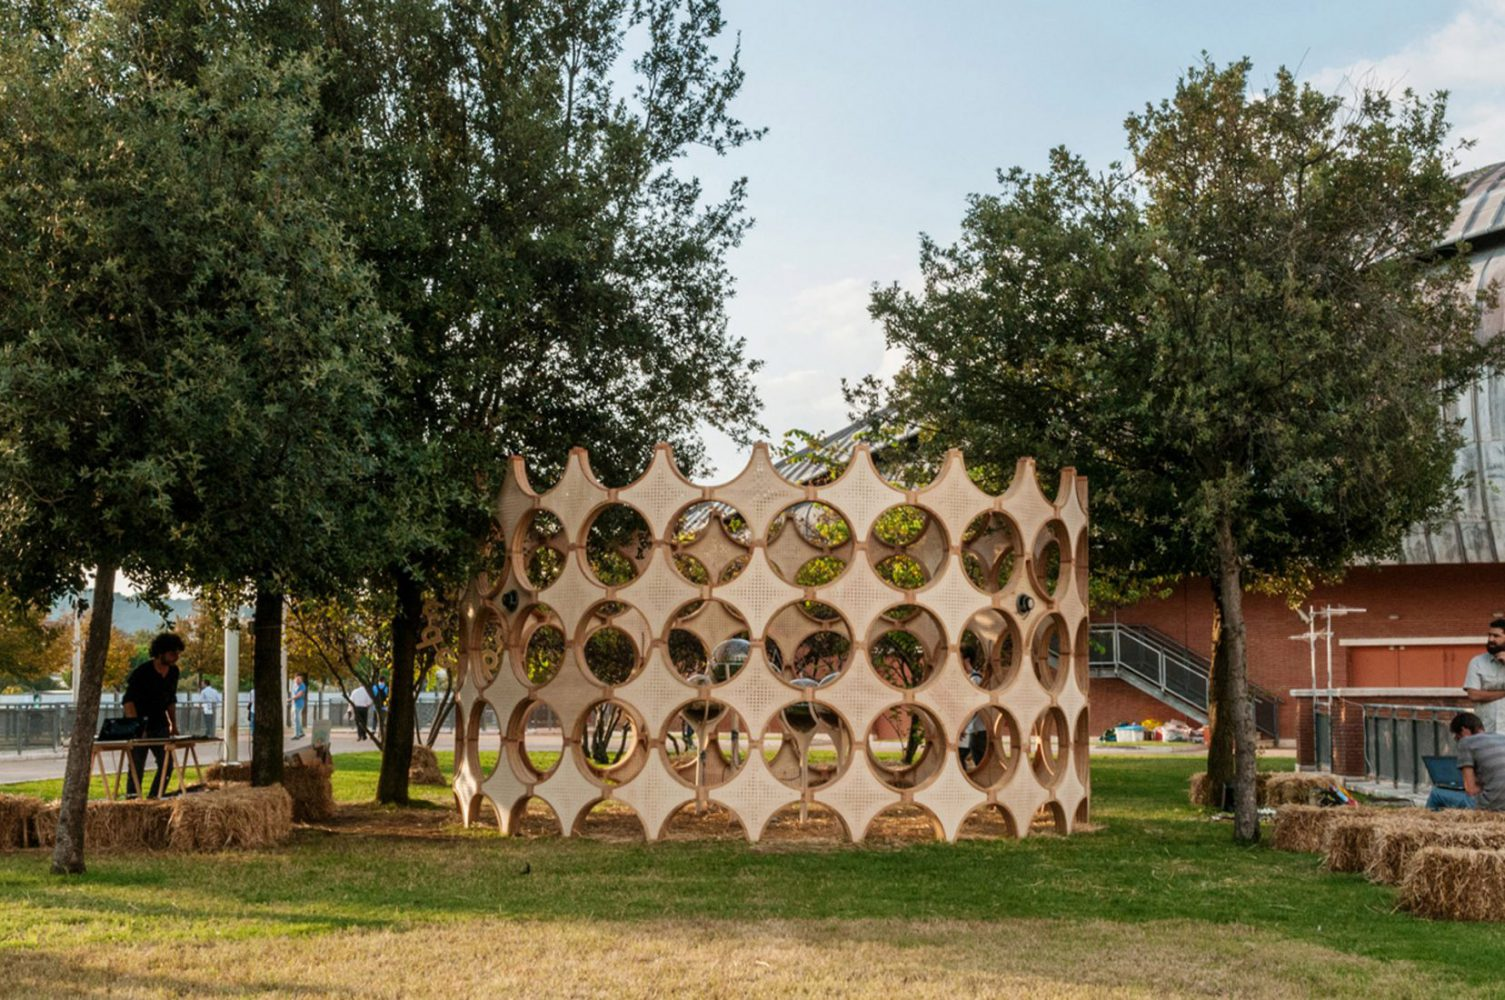 Insect pavilion in the open air